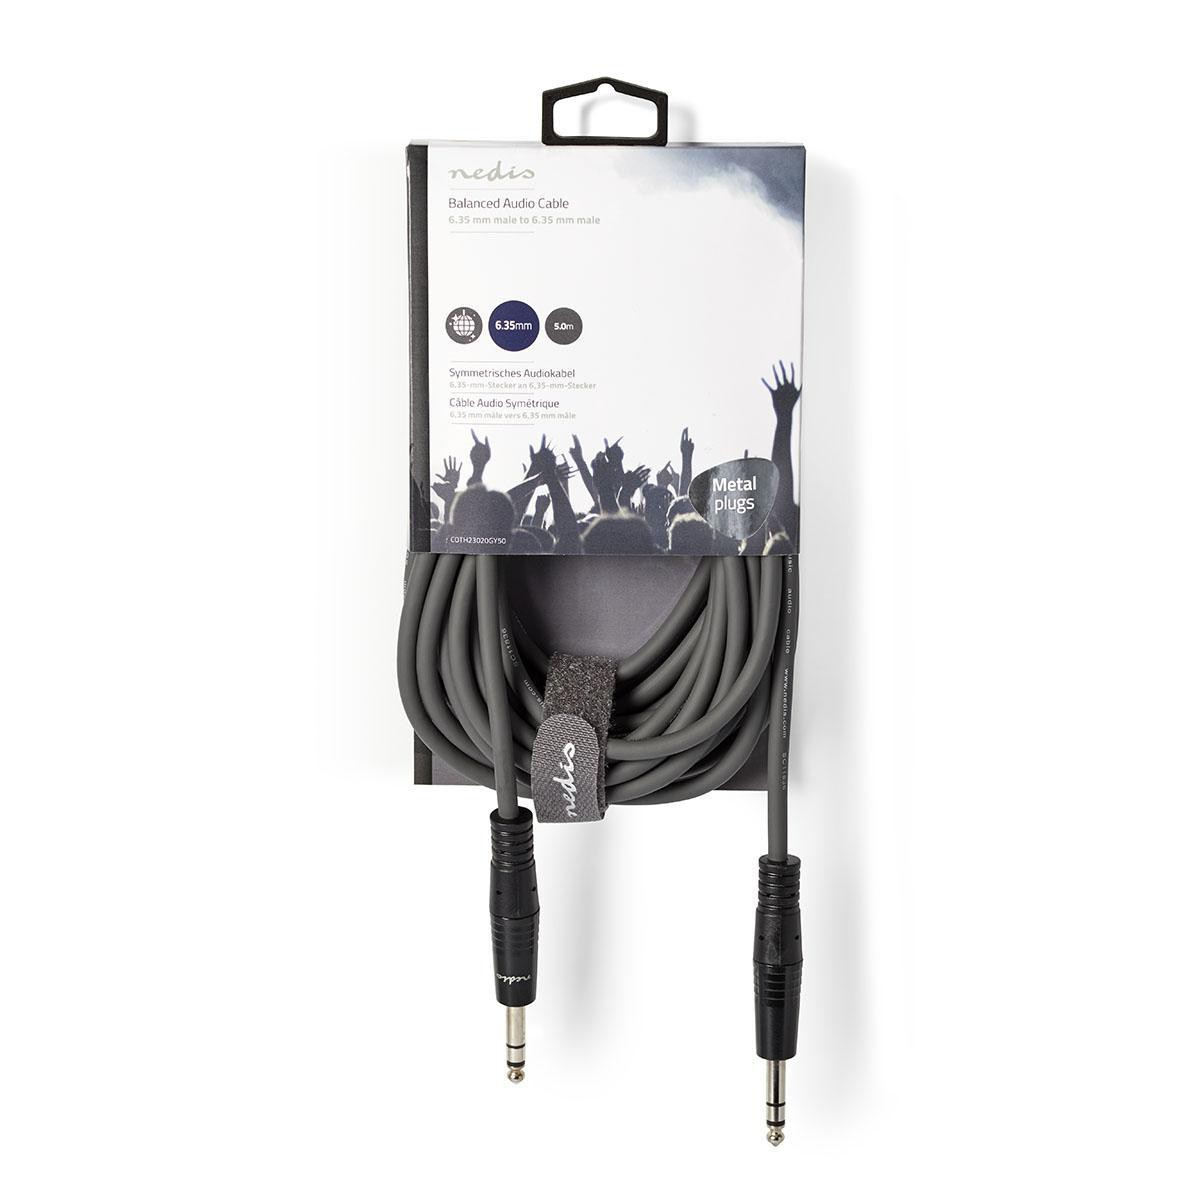 NEDIS COTH23020GY50 - KABEL JACK 6.3 STEREO 5.0 METER